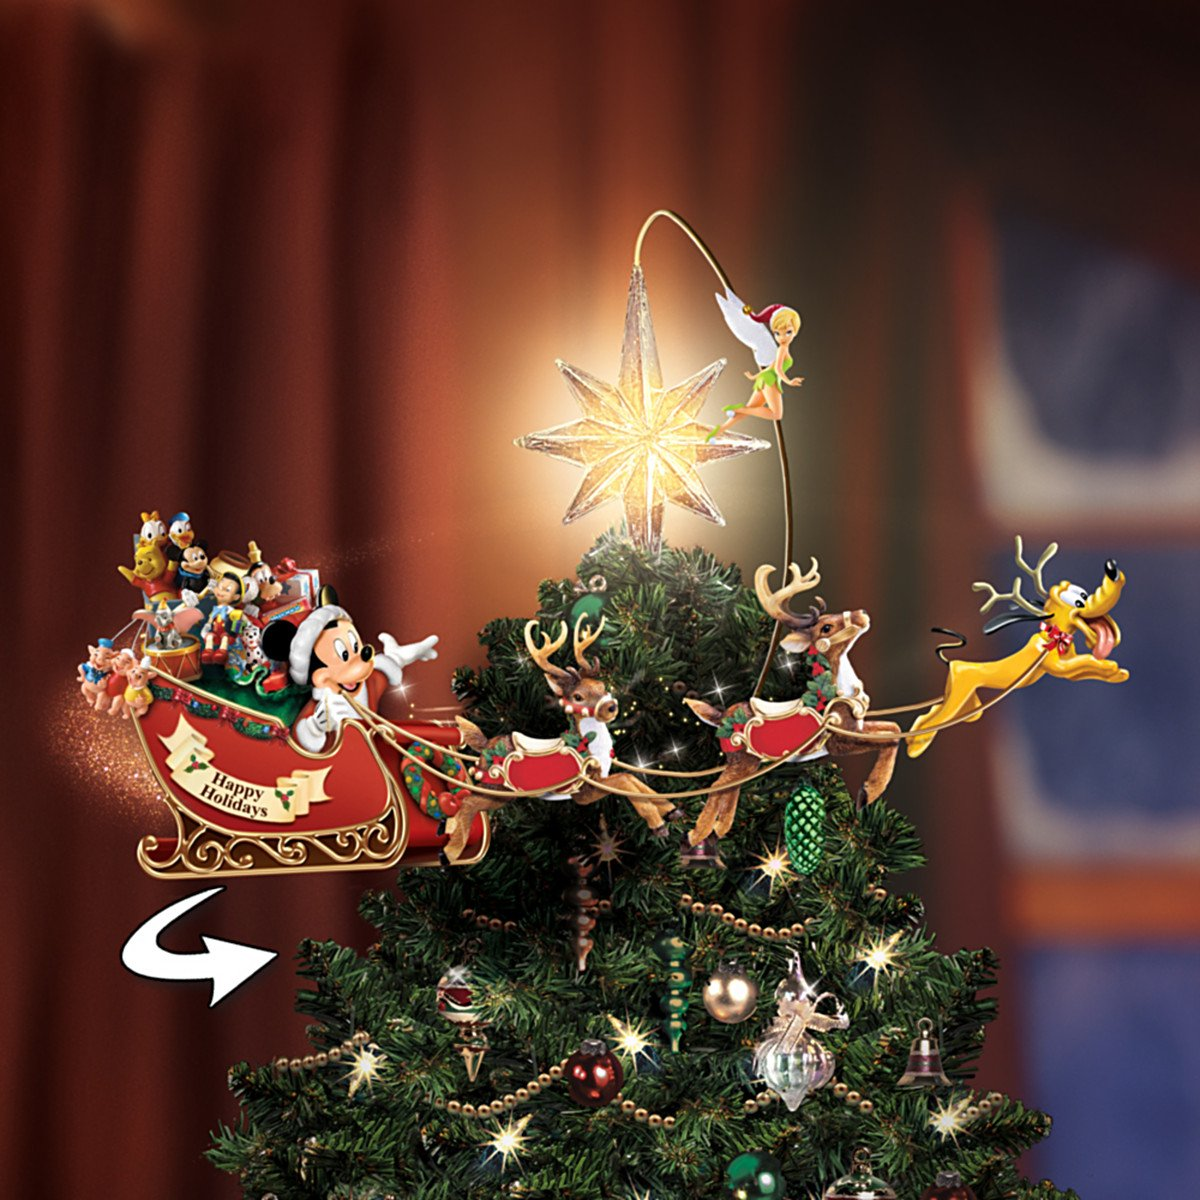 amazoncom disneys timeless holiday treasures tree topper by the bradford exchange home kitchen - Disney Christmas Tree Topper